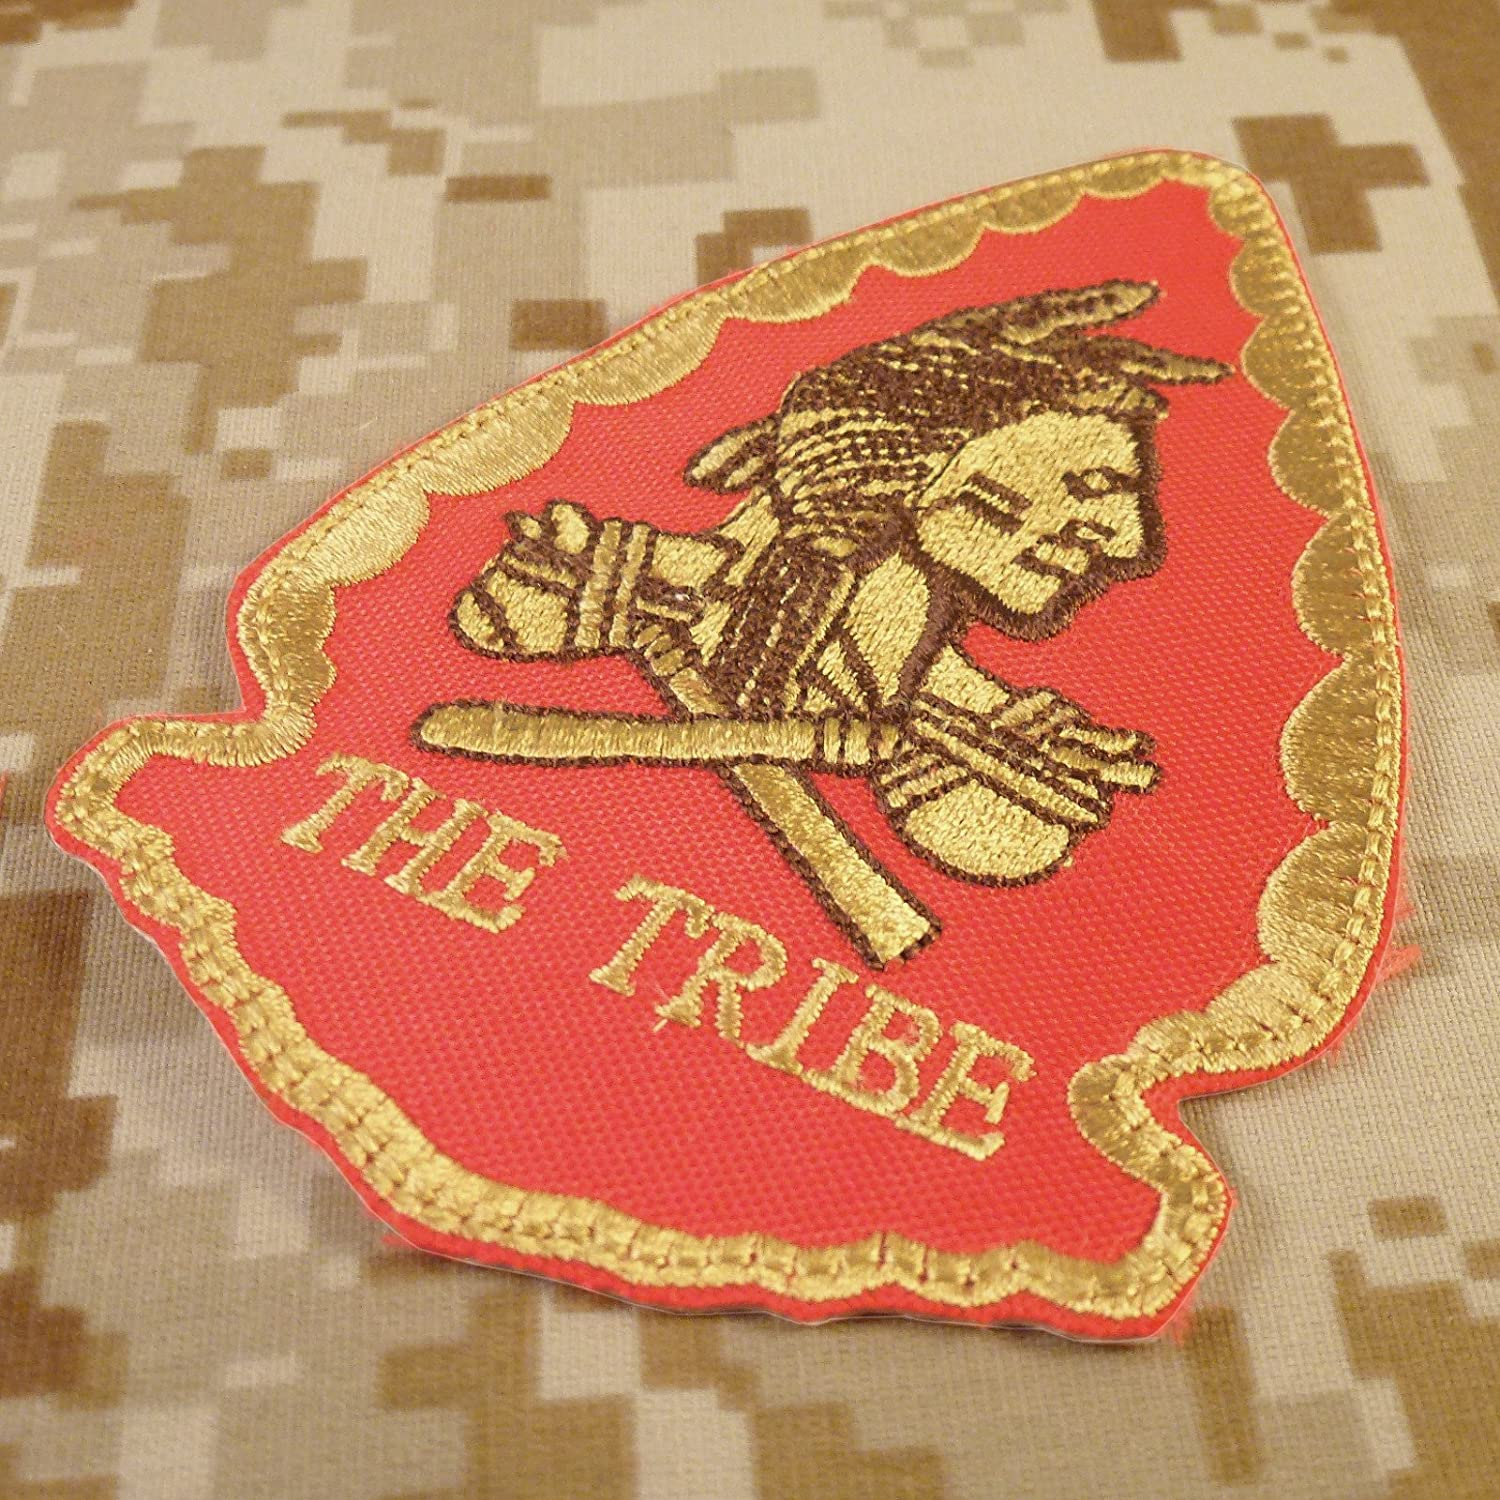 US Navy Seals Red Team Squadron THE TRIBE morale NSWDG bordado parche hook patch